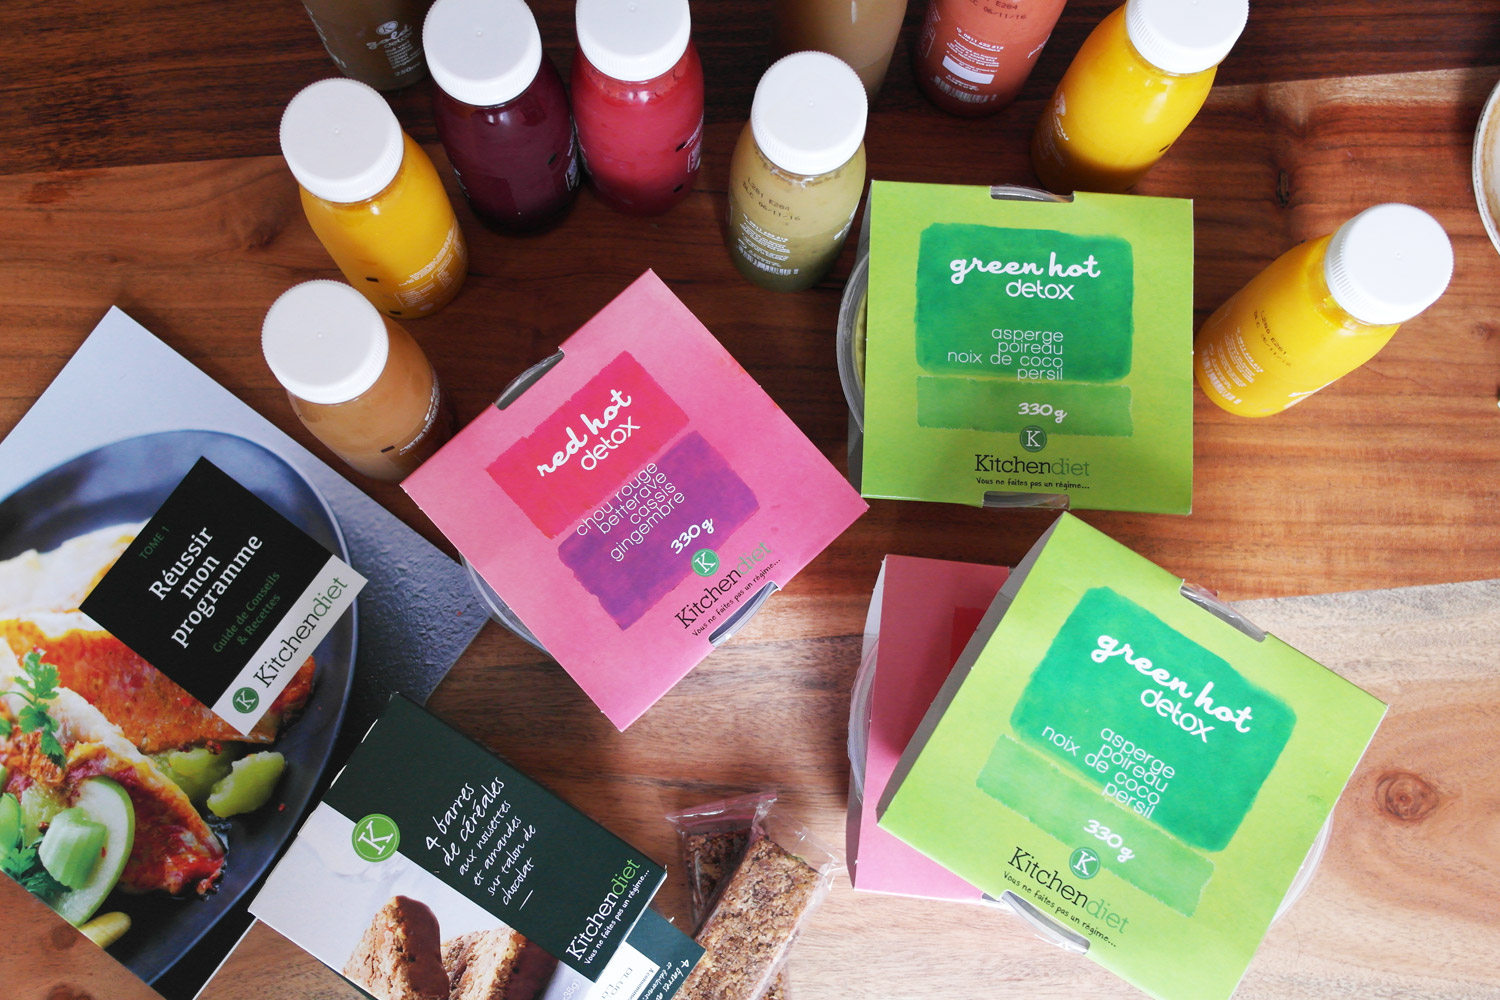 la-coutch-blog-jai-teste-la-cure-detox-3-jours-food-healthy1